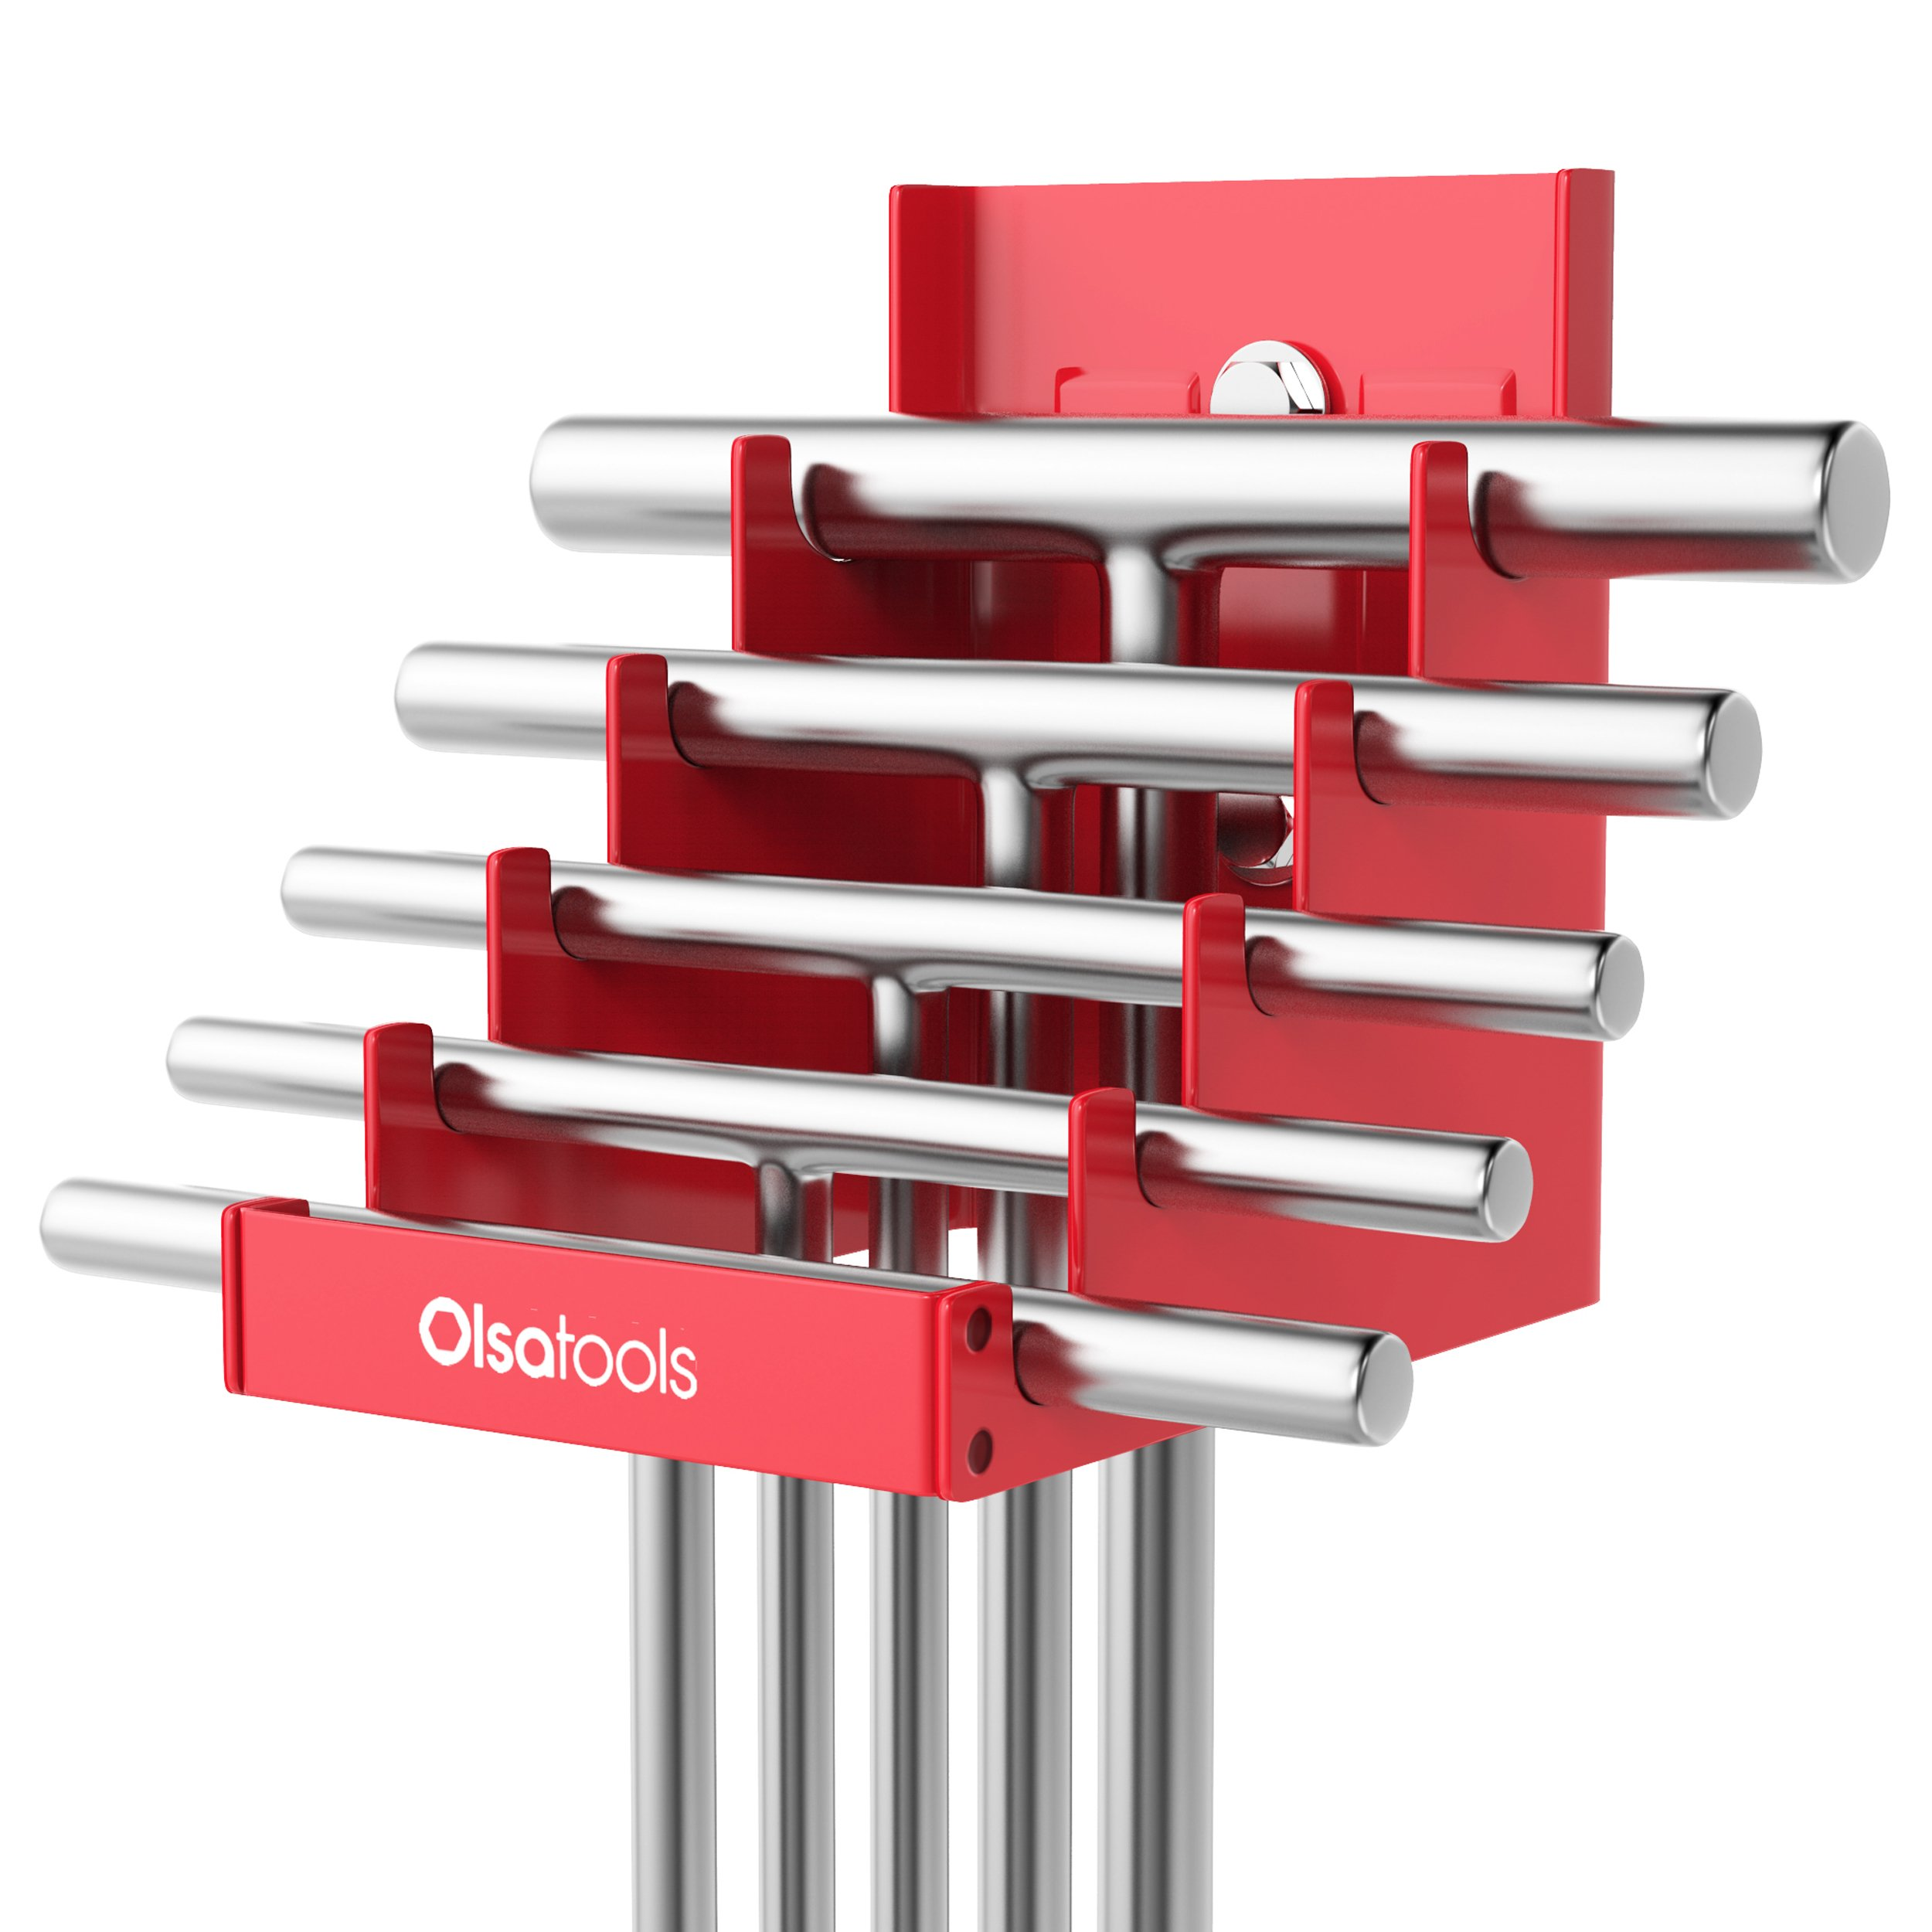 Olsa Tools | Magnetic T-Handle Organizer for Tool Storage | Heavy Duty Magnetic Tool Organizer | Holds 5 T-Handles | Red